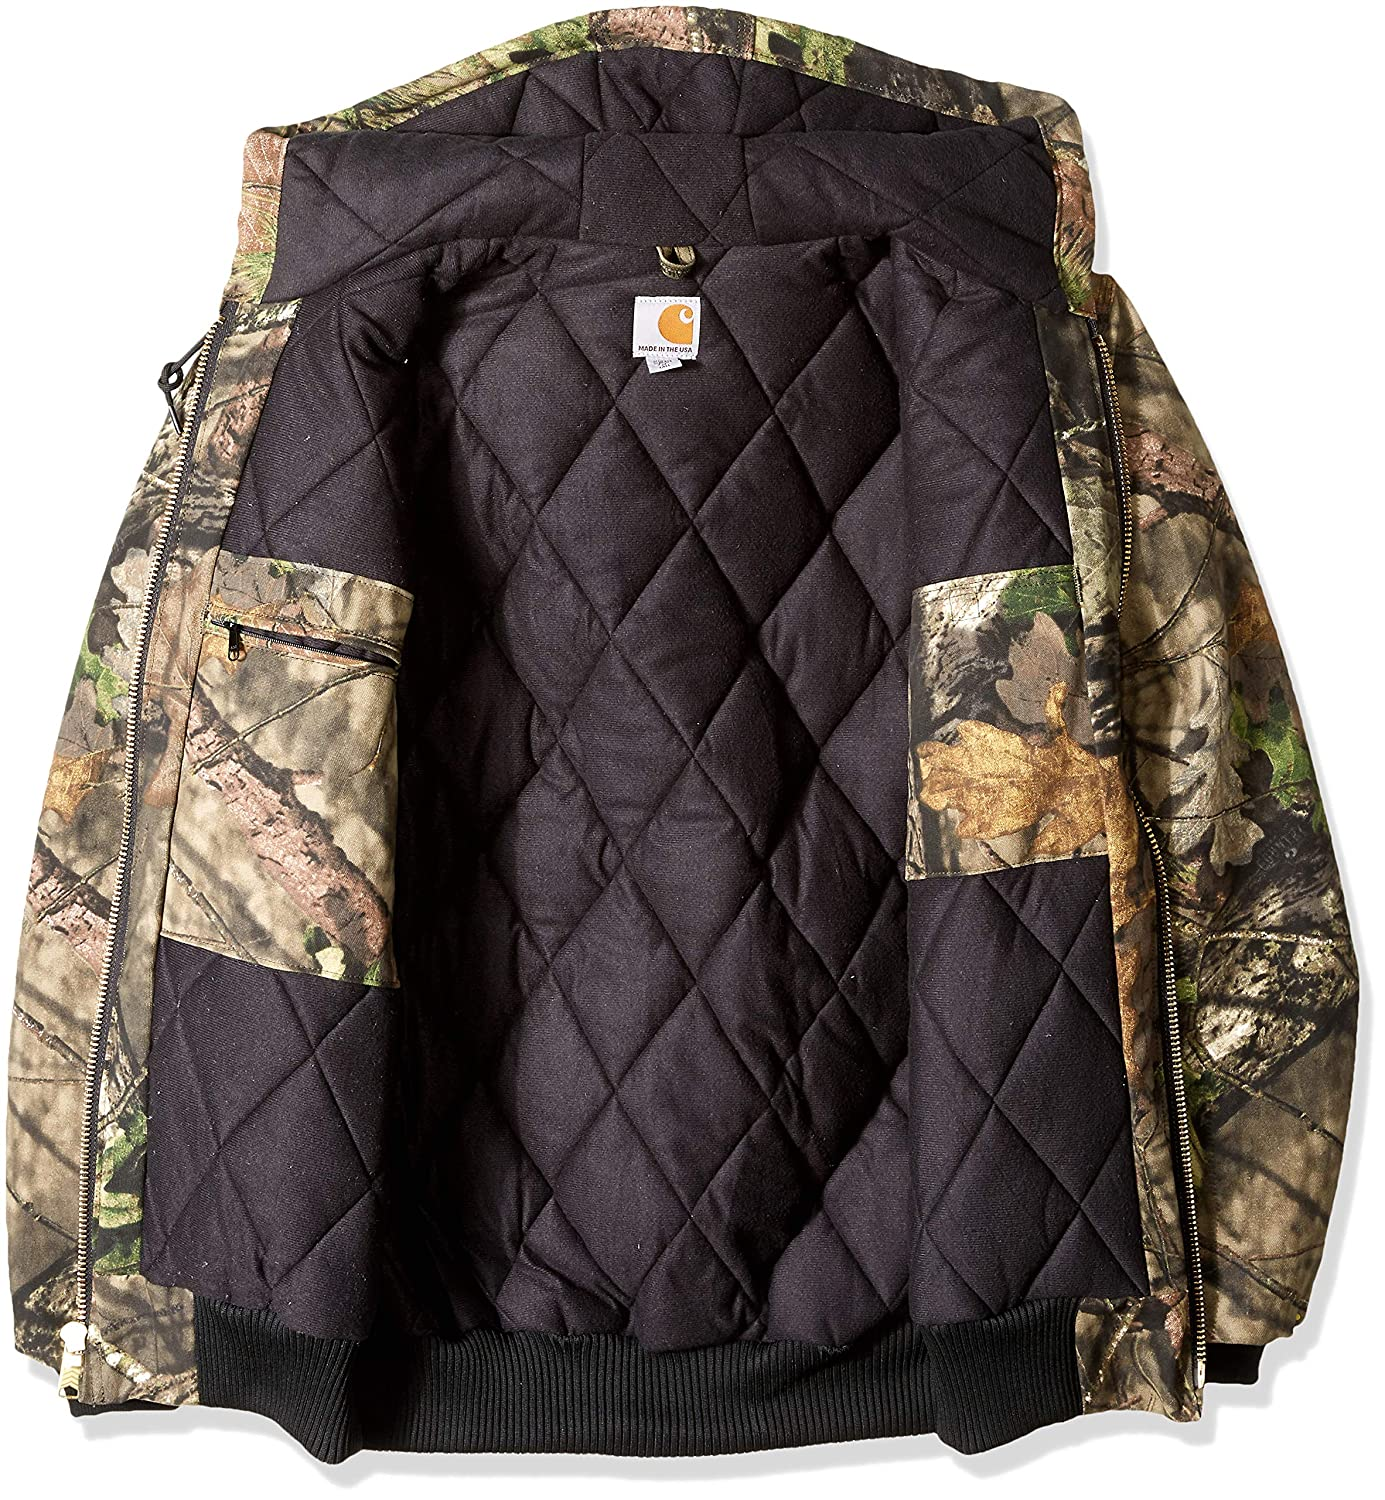 eb104e5736f09 Carhartt Mens Big & Tall Quilted Flannel Lined Camo Active Jac J221BT  Jackets & Coats